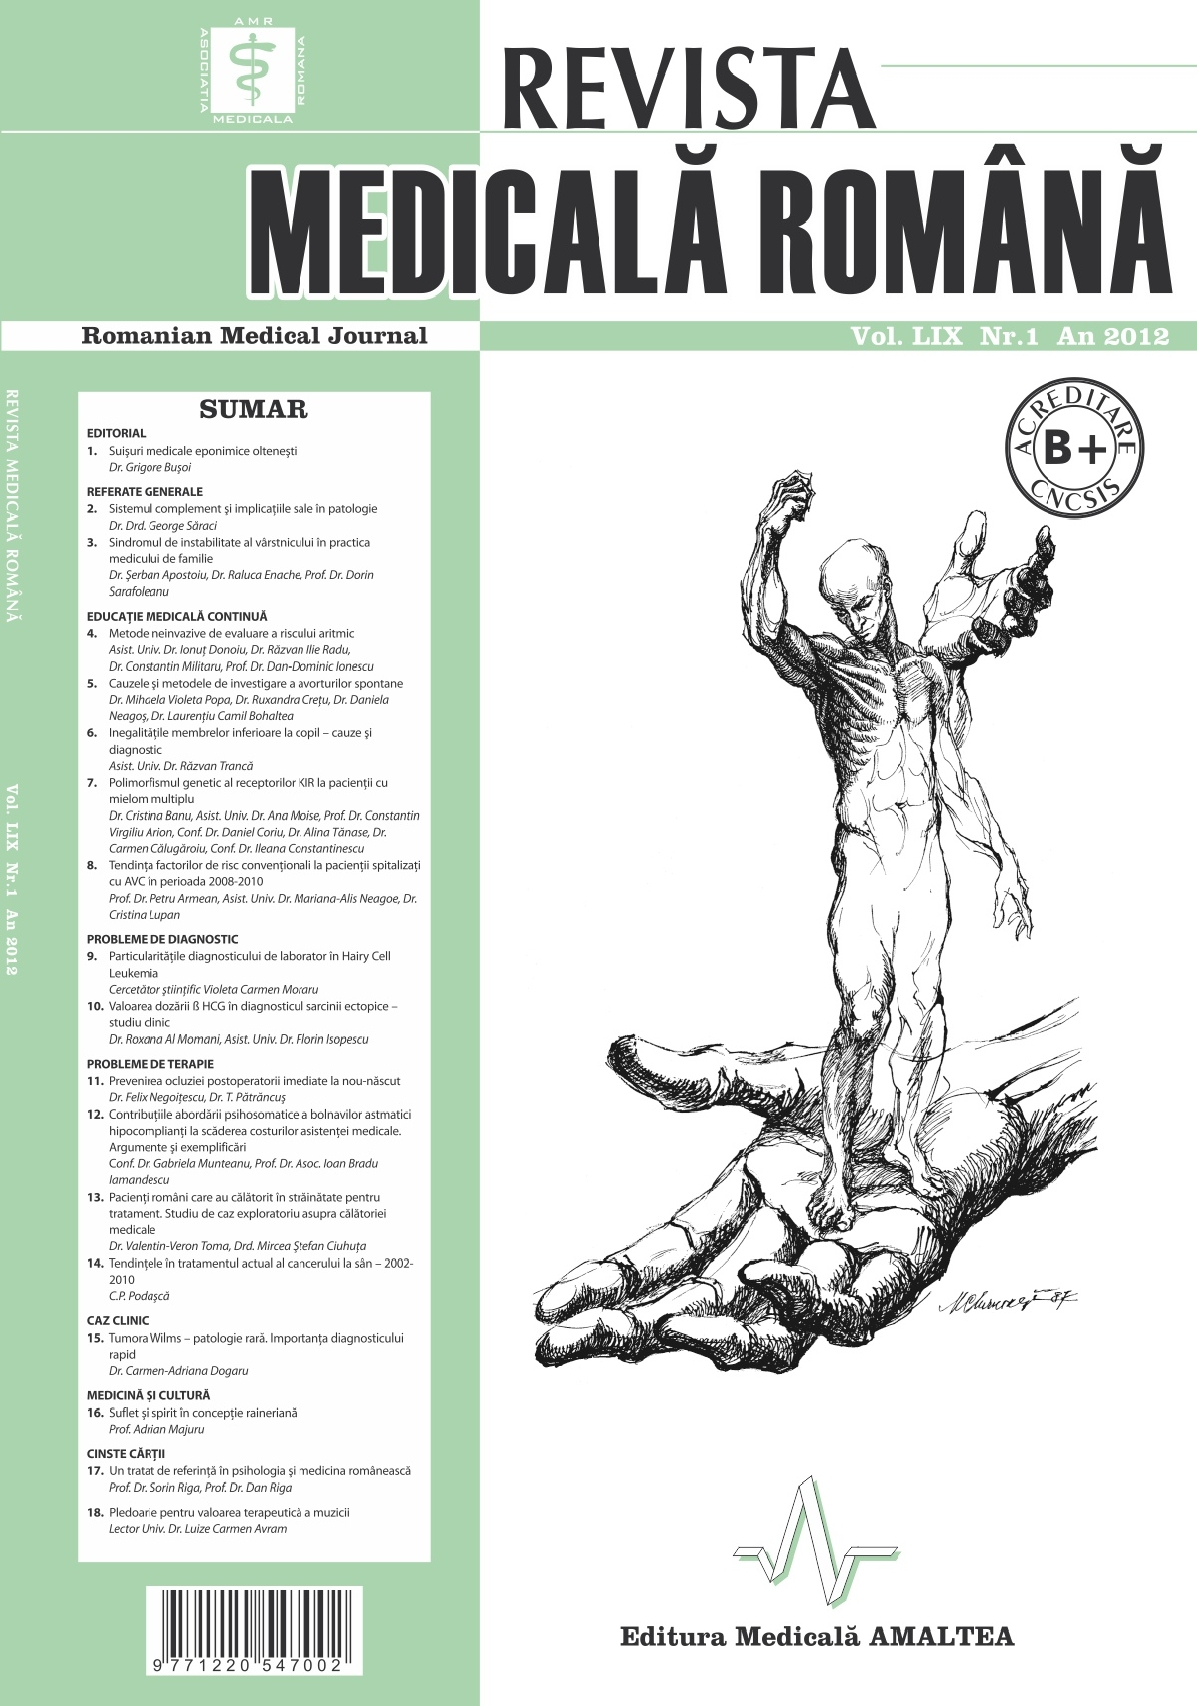 REVISTA MEDICALA ROMANA - Romanian Medical Journal, Vol. LIX, No. 1, Year 2012